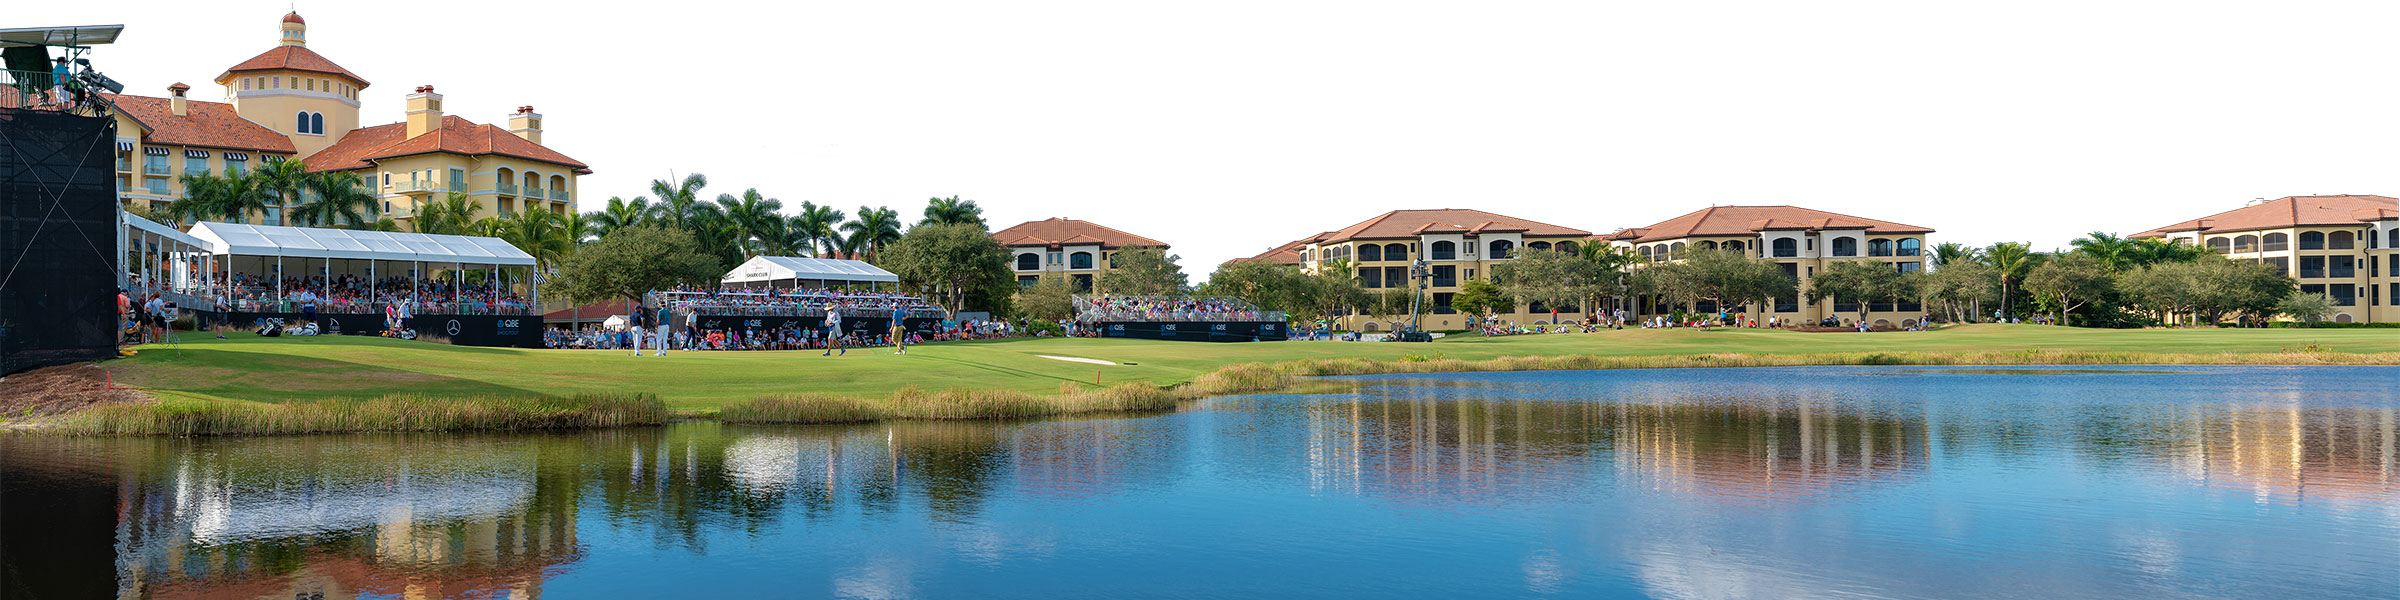 Tiburón Golf Club at The Ritz Carlton Golf Resort, Naples